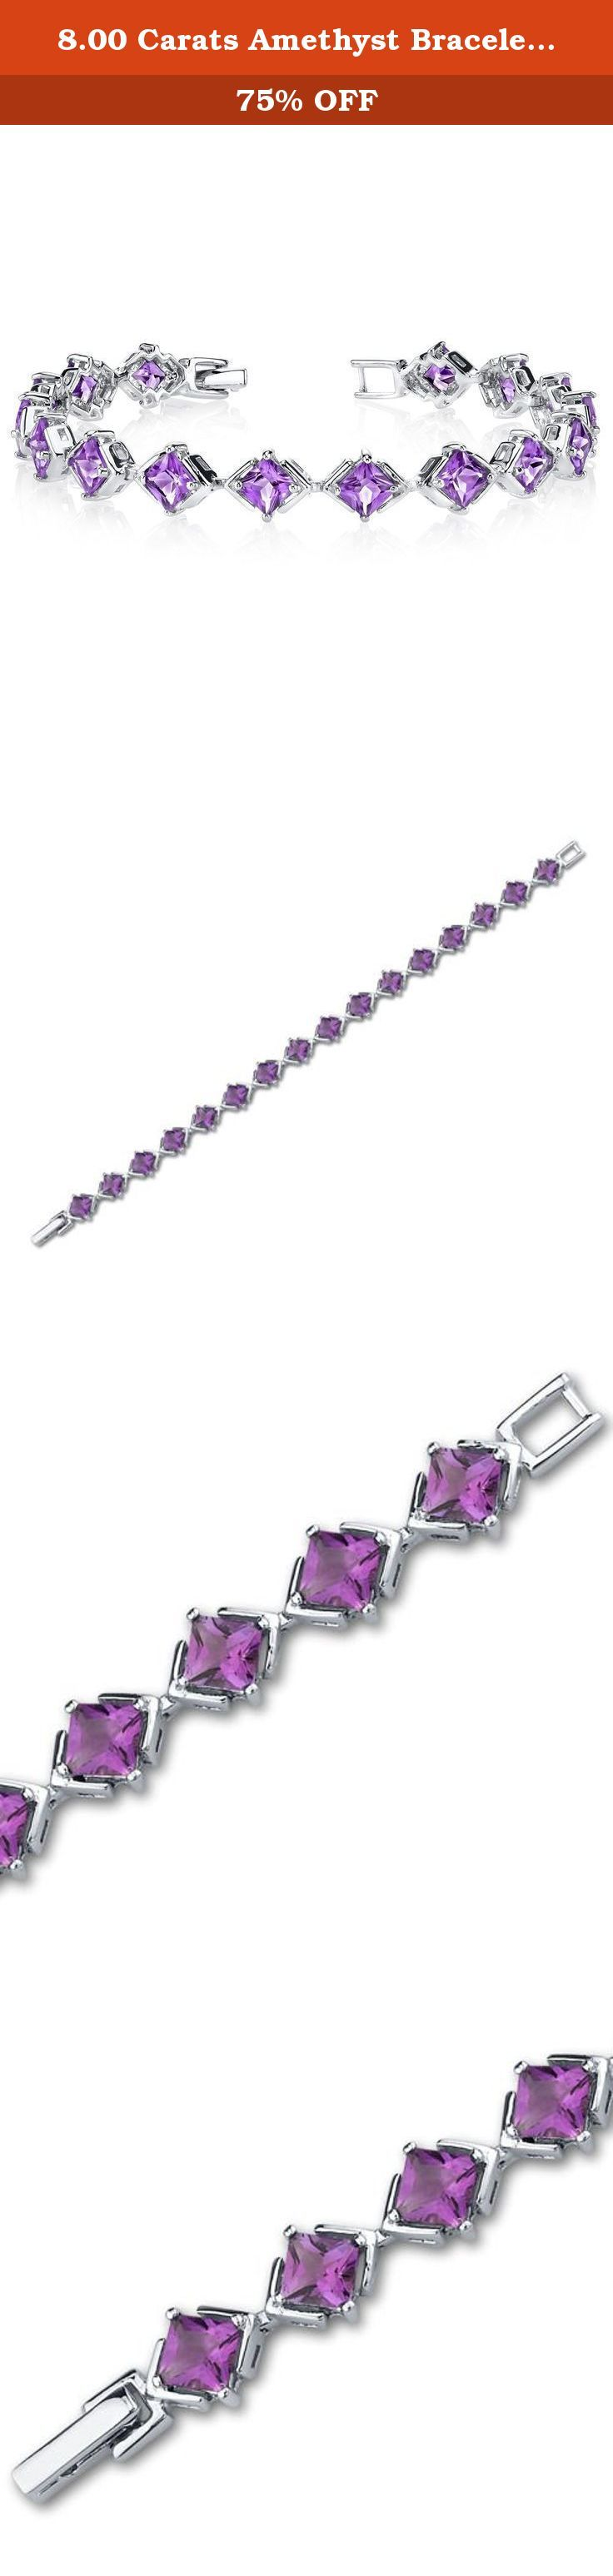 8.00 Carats Amethyst Bracelet Sterling Silver Princess Cut. 8.00 carats total weight Princess Cut Amethyst Gemstone Bracelet in Sterling Silver Stones: Genuine Amethyst : 16 pieces, Princess Cut 5.00mm, 8.00 carats total weight Gemstones have a deep rich color and tremendous fire. Bracelet: 8.69 grams Pure Sterling Silver with .925 stamp 7 1/4 length, 3/8 width Approximate Retail Value: $159.99 Bracelet features one of akind design with a beautiful Rhodium Finish. 100% Money Back…